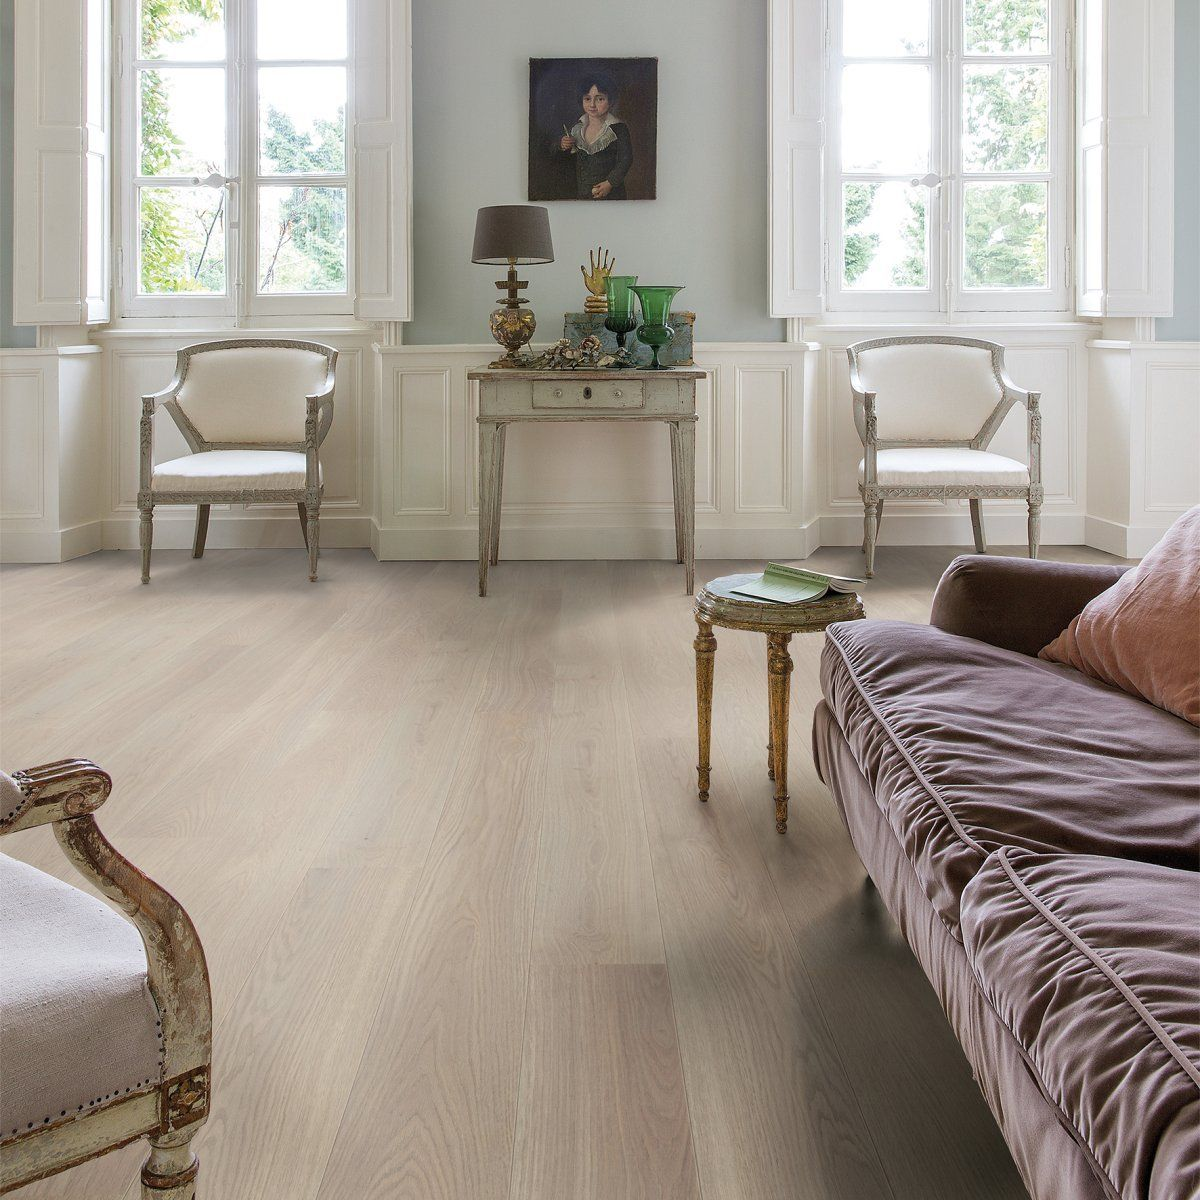 Parquet Contrecolle Large Palazzo Chene Givre Huile Quick Step 14x190x1820 Mm Quick Step Null Decoration Interieure Parquet Contrecolle Decoration Maison